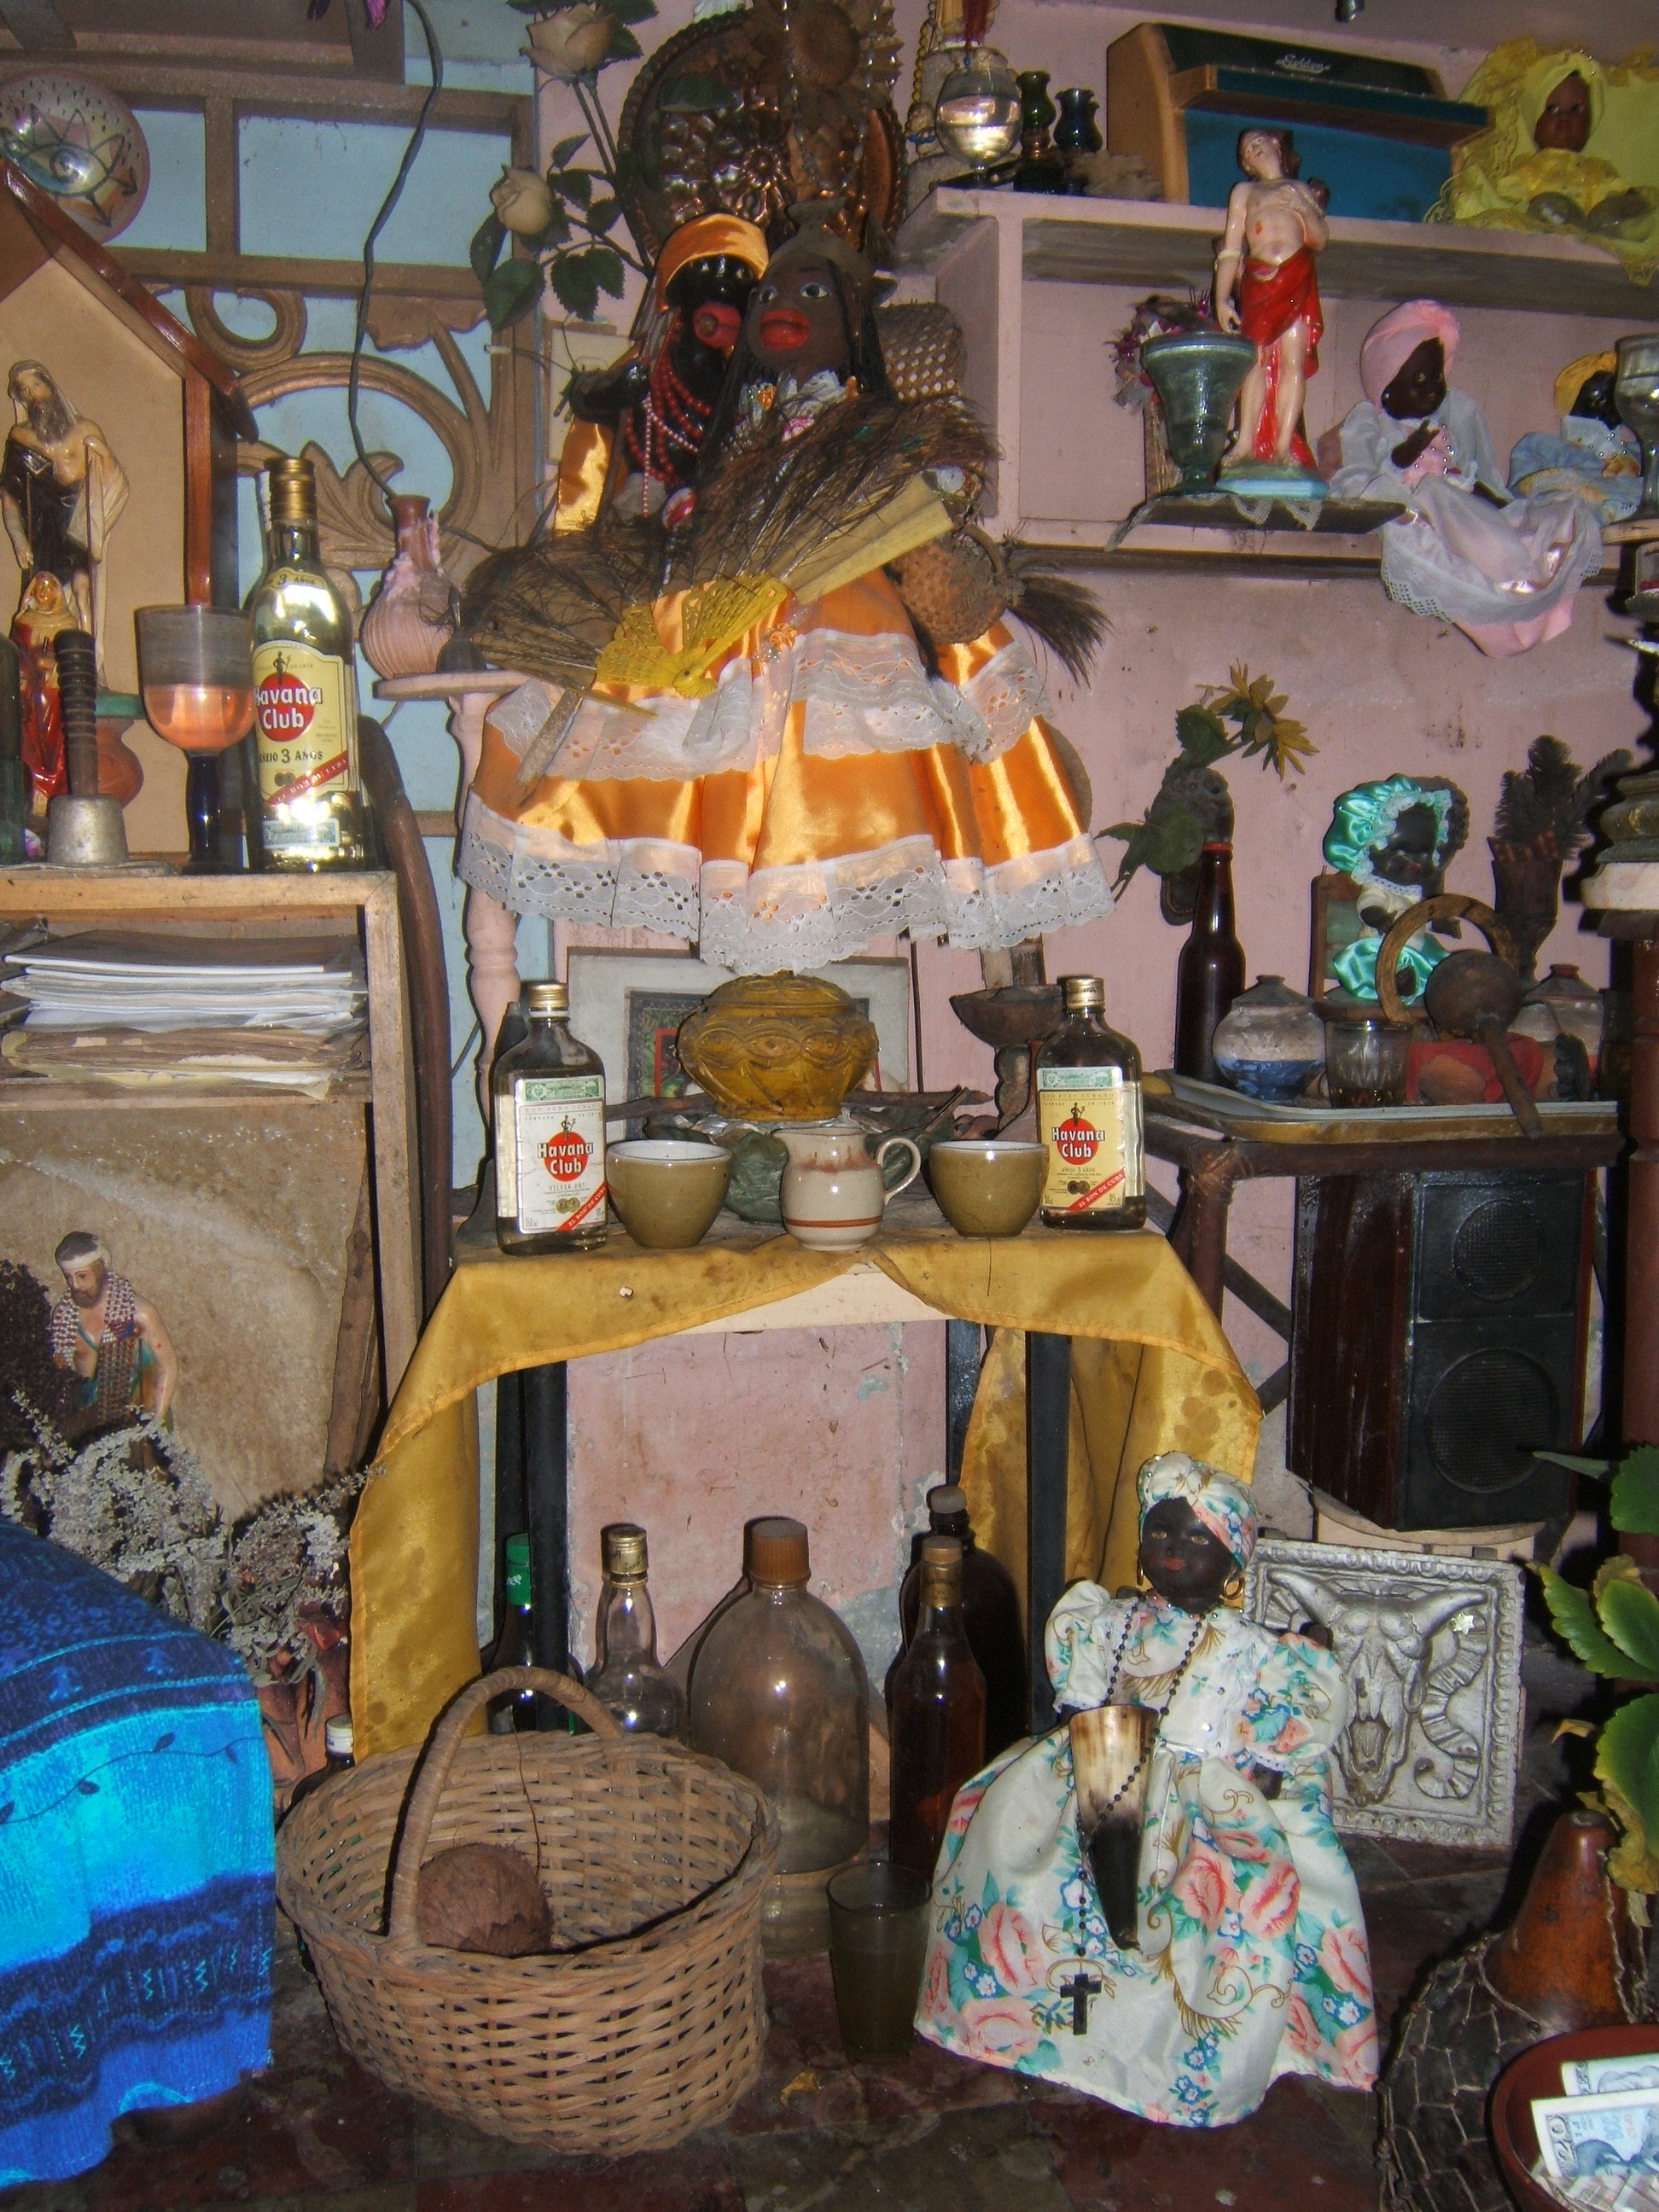 Figure 9. A close-up of Pedro's altar focused on a pair of cloth dolls adorned to represent the orichas Changó and Ochún, with closed vessels and rum offerings arrayed below them. On the floor, a plastic doll in a floral-print dress and head-wrap holds an mpaka or Palo object made of a horn. Santiago de Cuba, August 2008. Photograph by author.